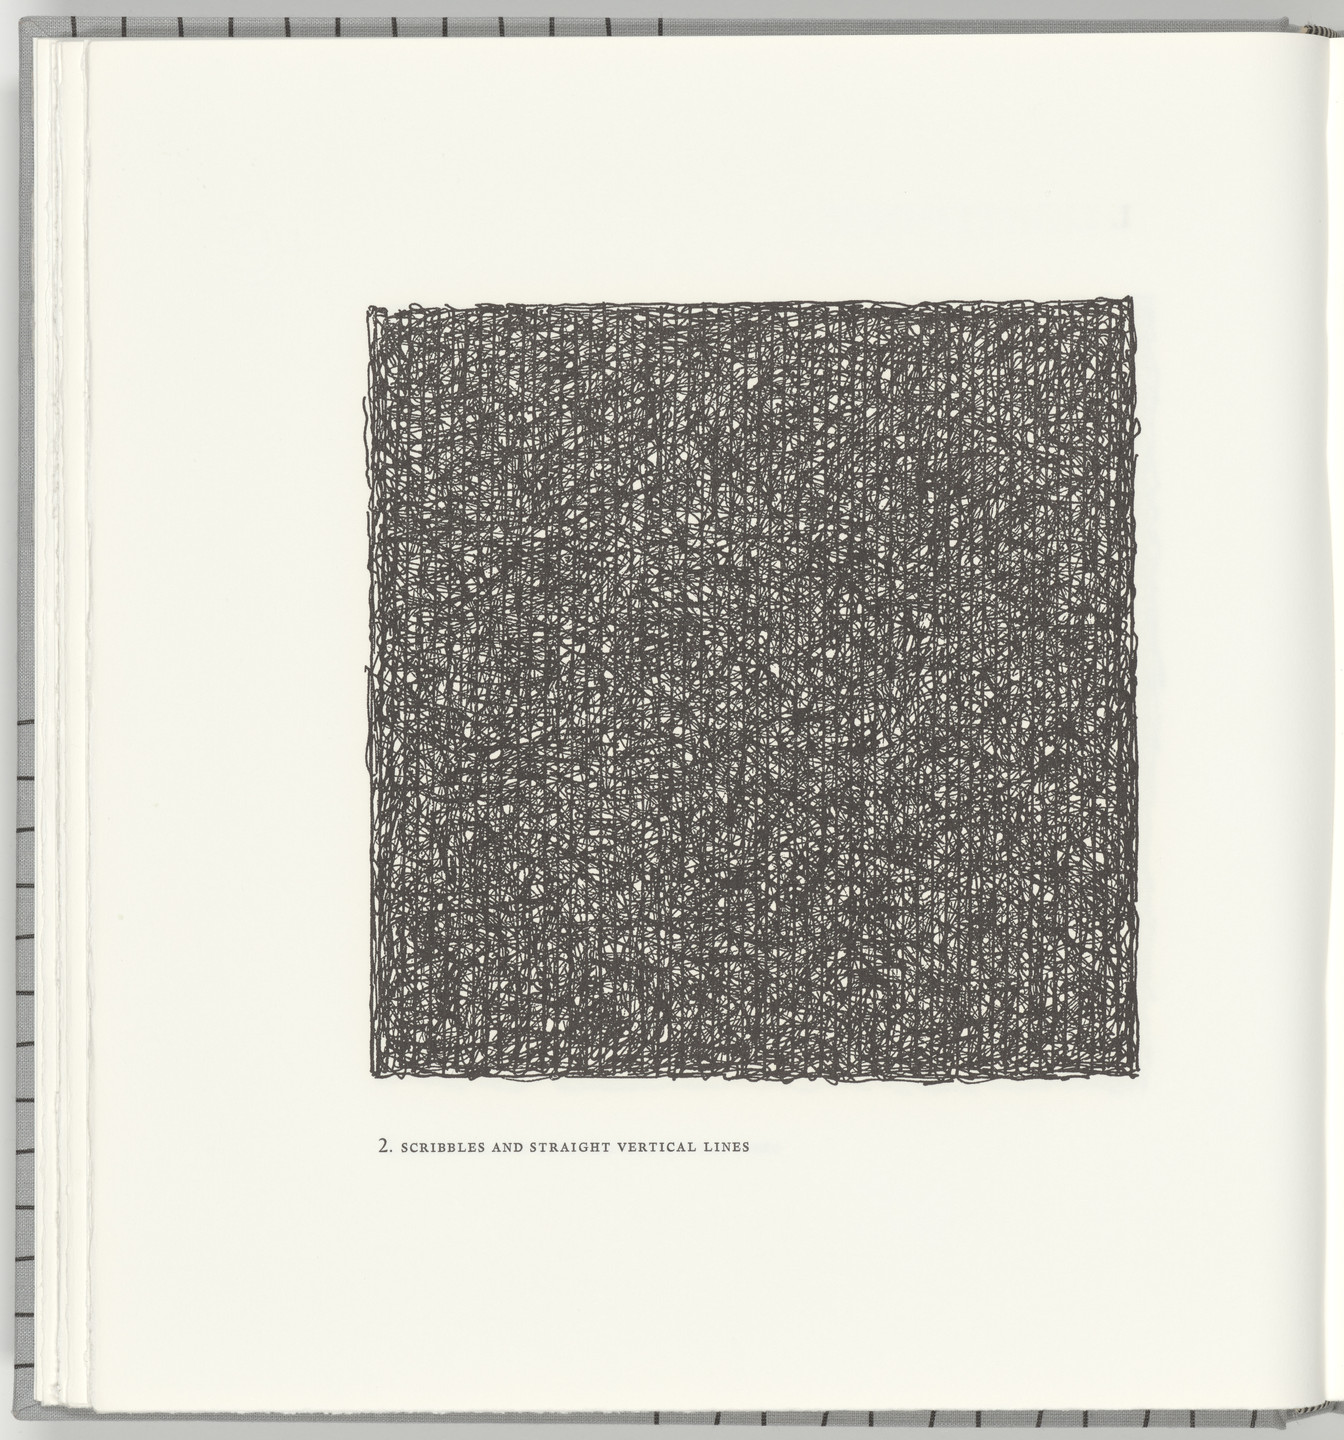 Sol LeWitt. Scribbles and Straight Vertical Lines(plate 2) from Squarings. 2003